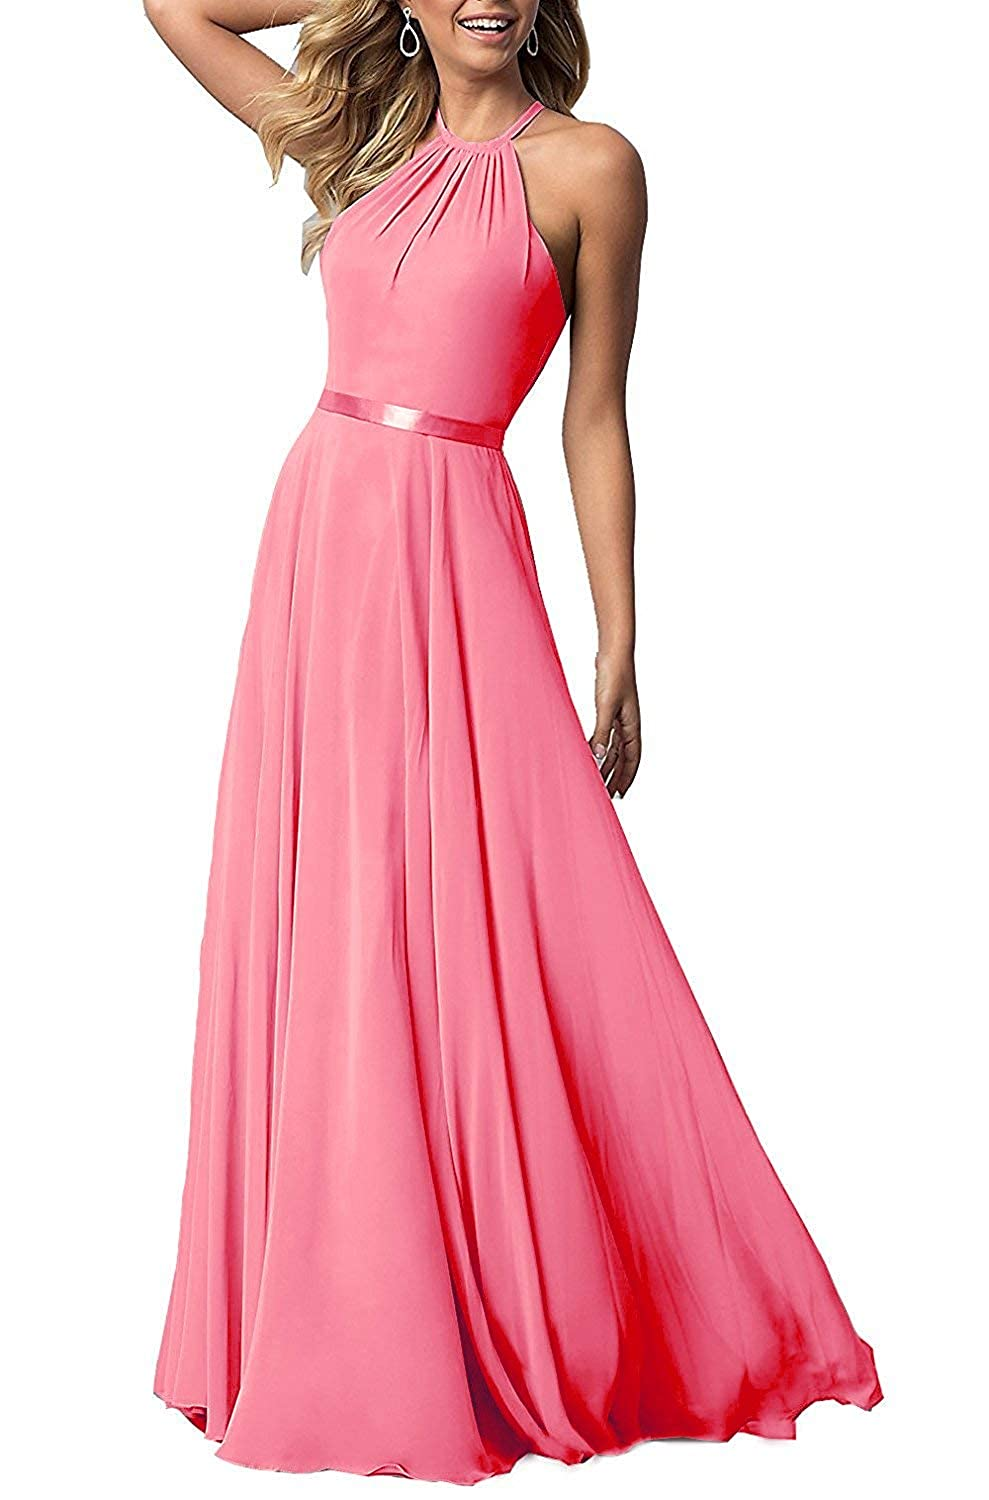 Coral ROMOO Sexy Halter Long Bridesmaid Dresses Open Back Aline Formal Evening Party Gowns